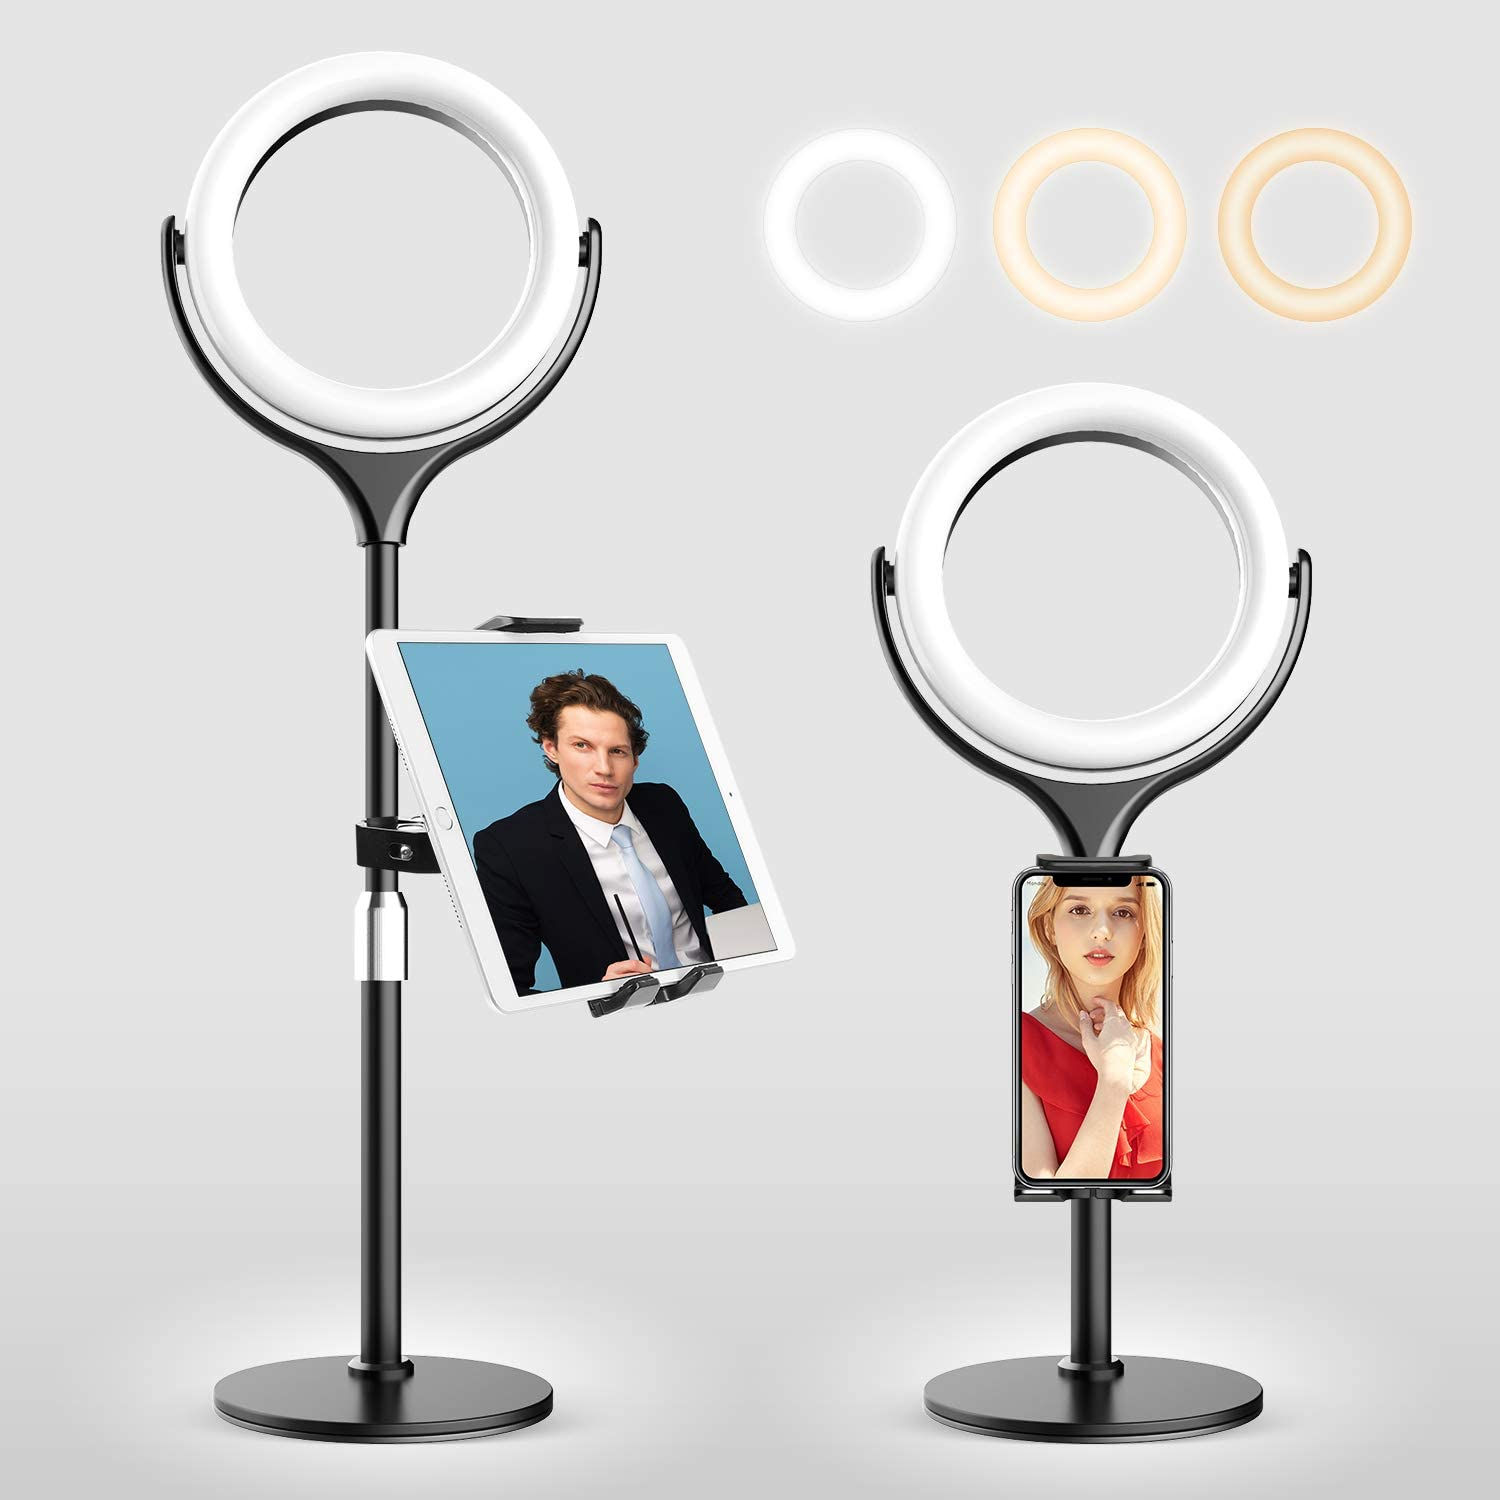 """Elitehood Tablet Stand Holder with Ring Light for Desk, Height Adjustable iPad Stand and Cell Phone Holder for 4-11.9"""" iPhone, iPad, LED Ring Light for iPad/Laptop Video Call, Video Recording, Selfie"""